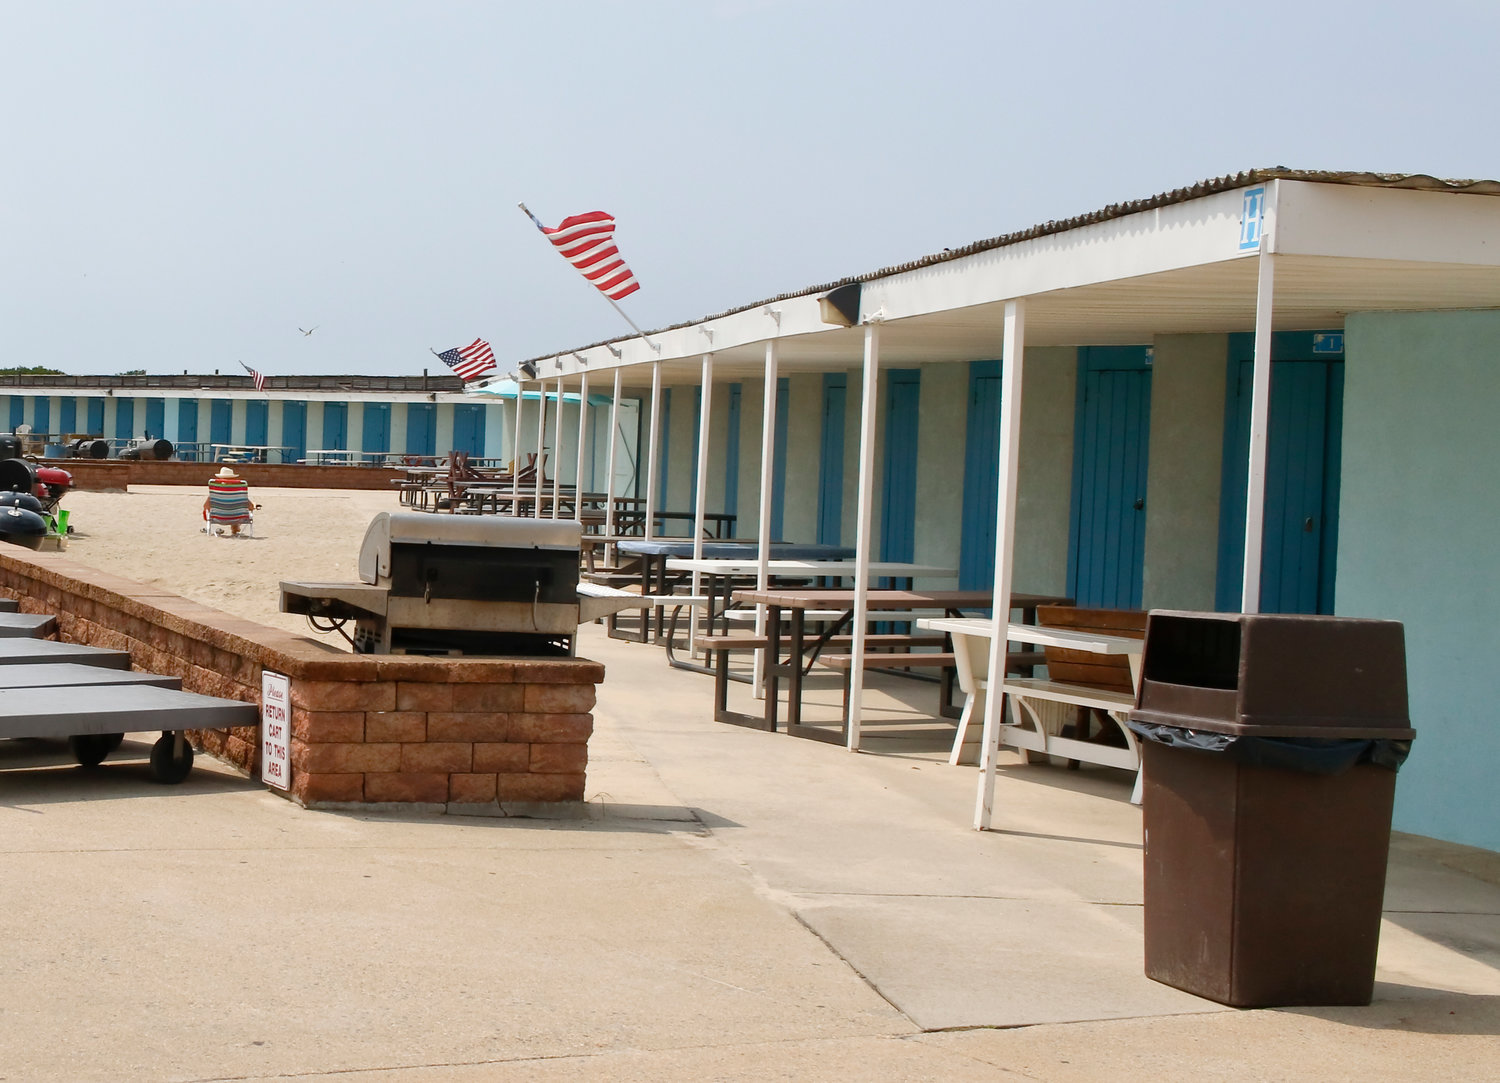 Cabanas are popular at the town's beach park during the summer months.